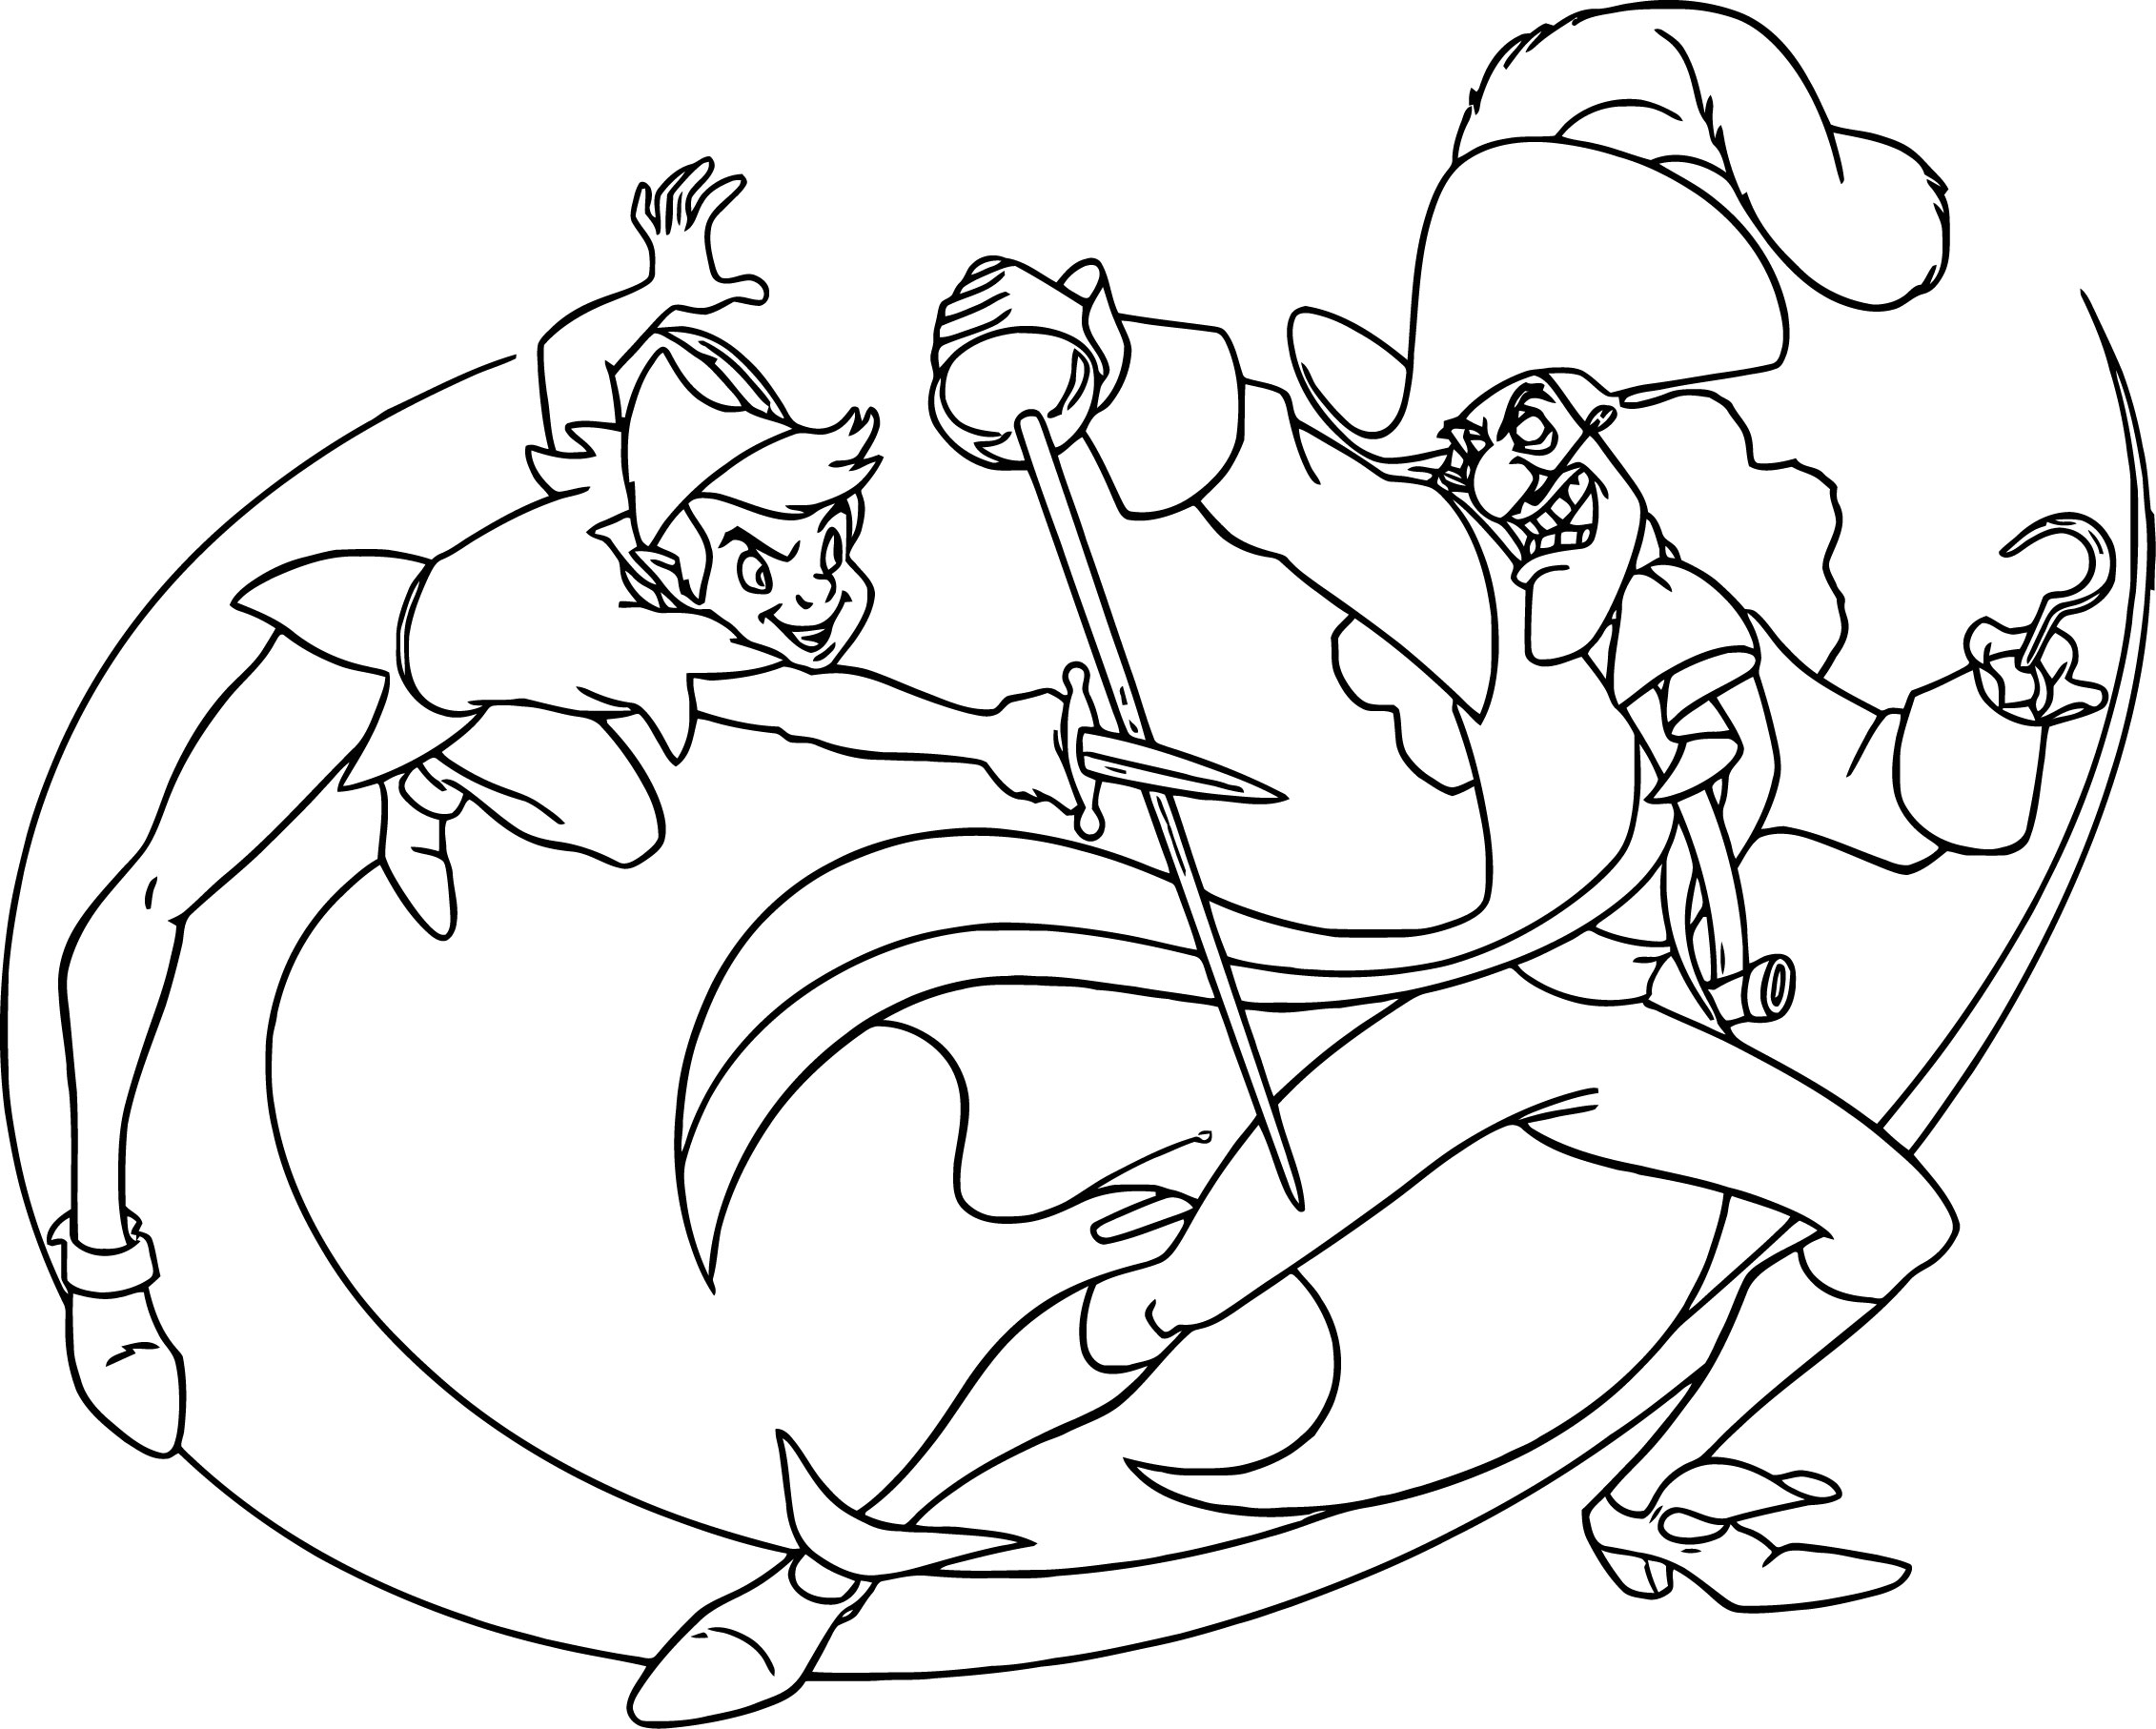 peter pan and captain hook coloring pages - Peter Pan Mermaids Coloring Pages